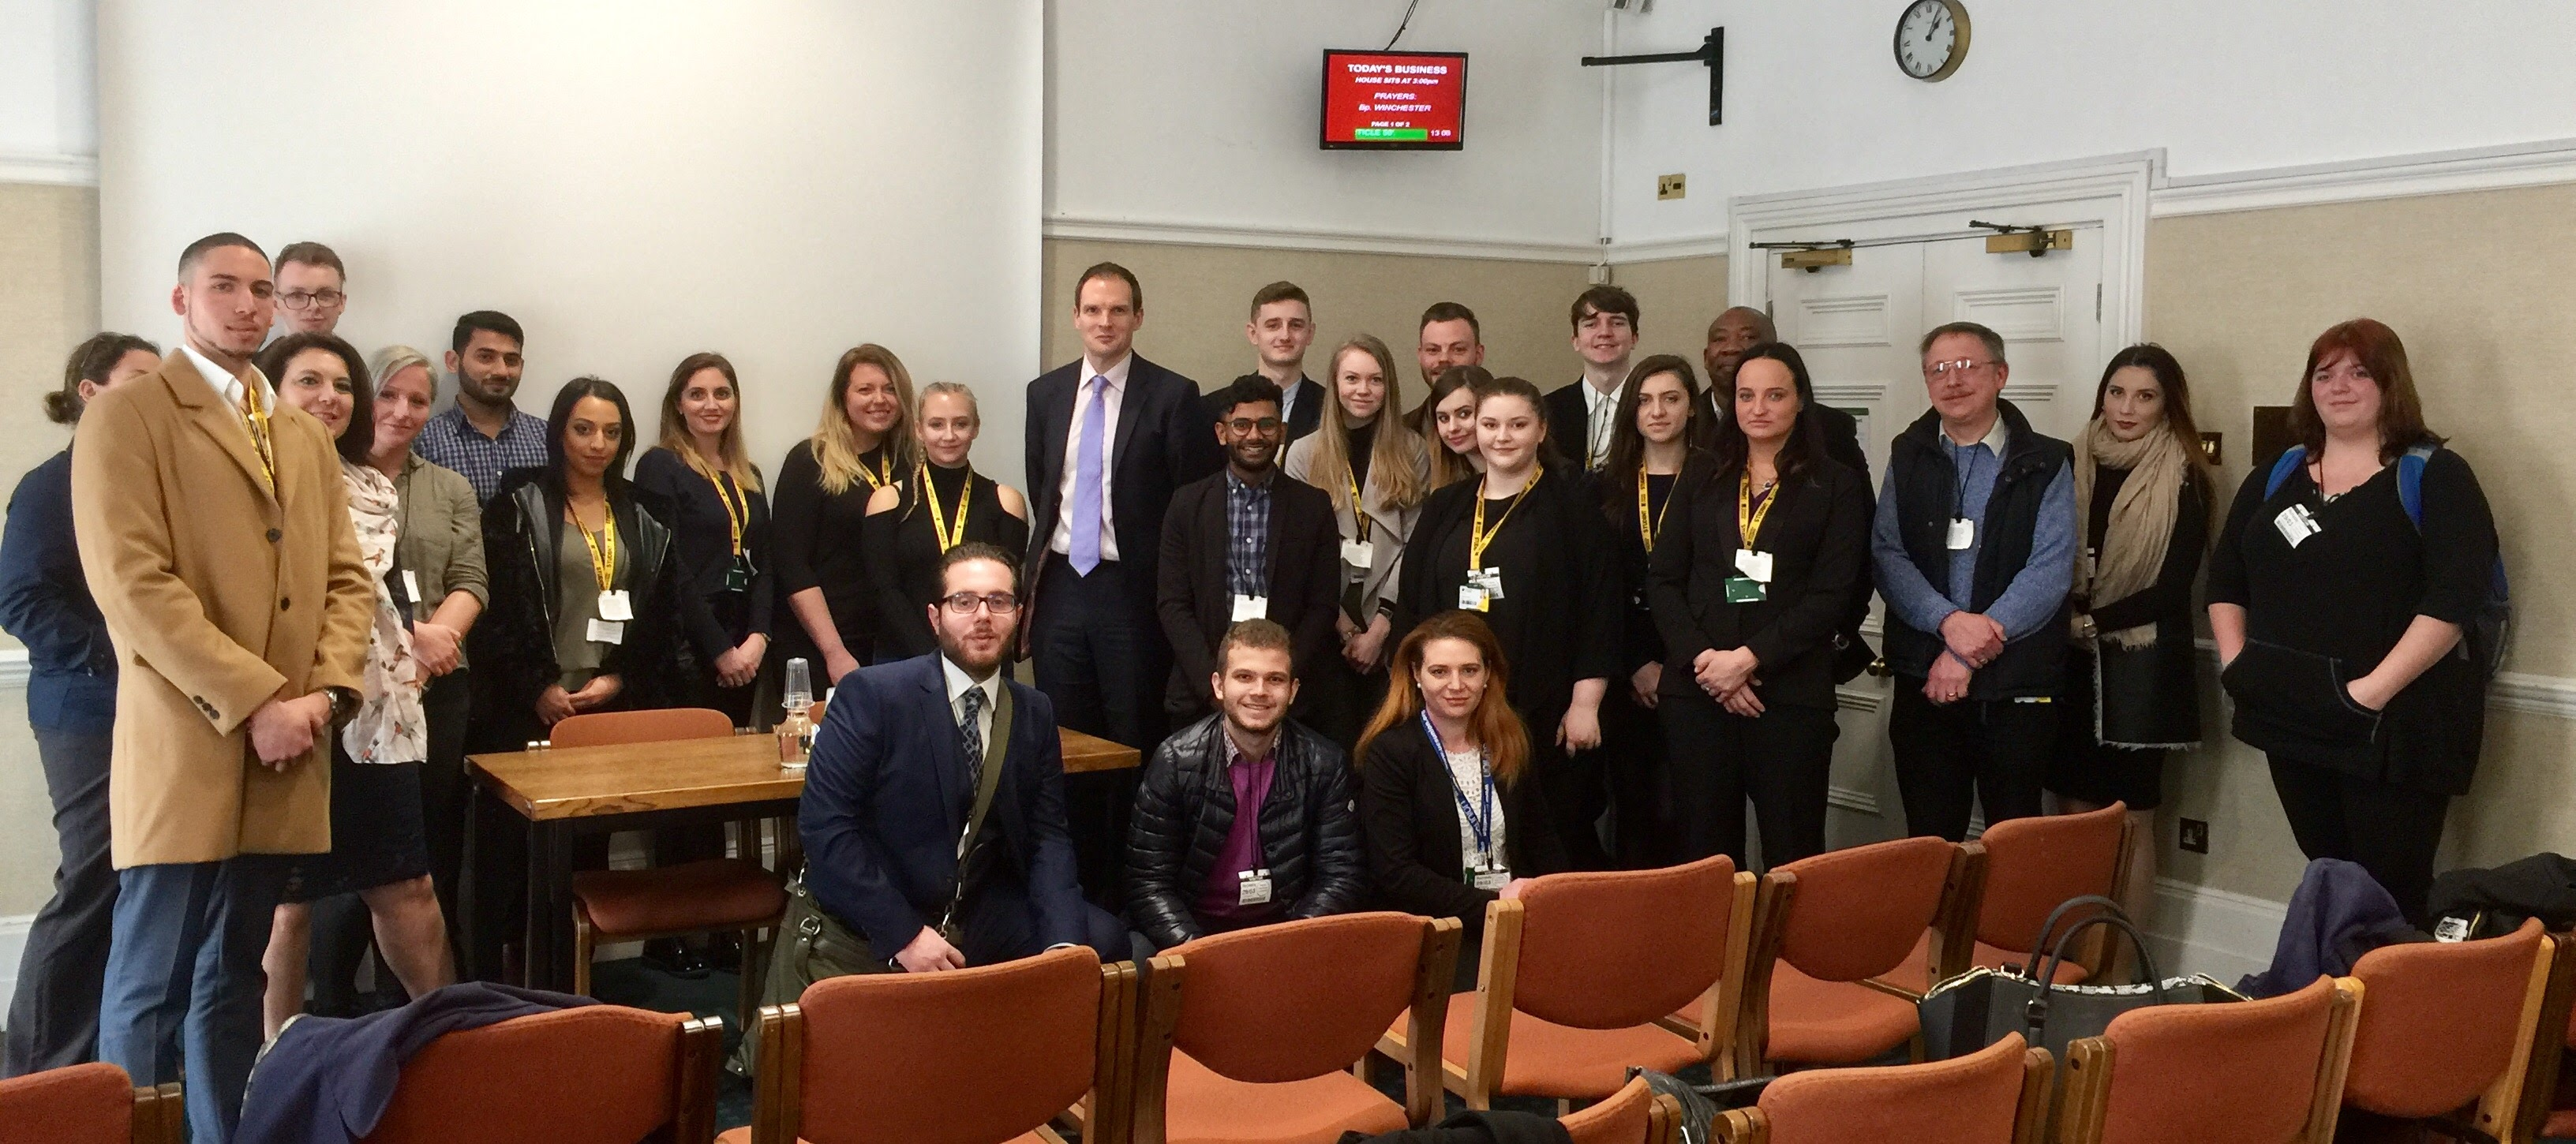 2017-03-29 Dr Dan with Students from University of Suffolk